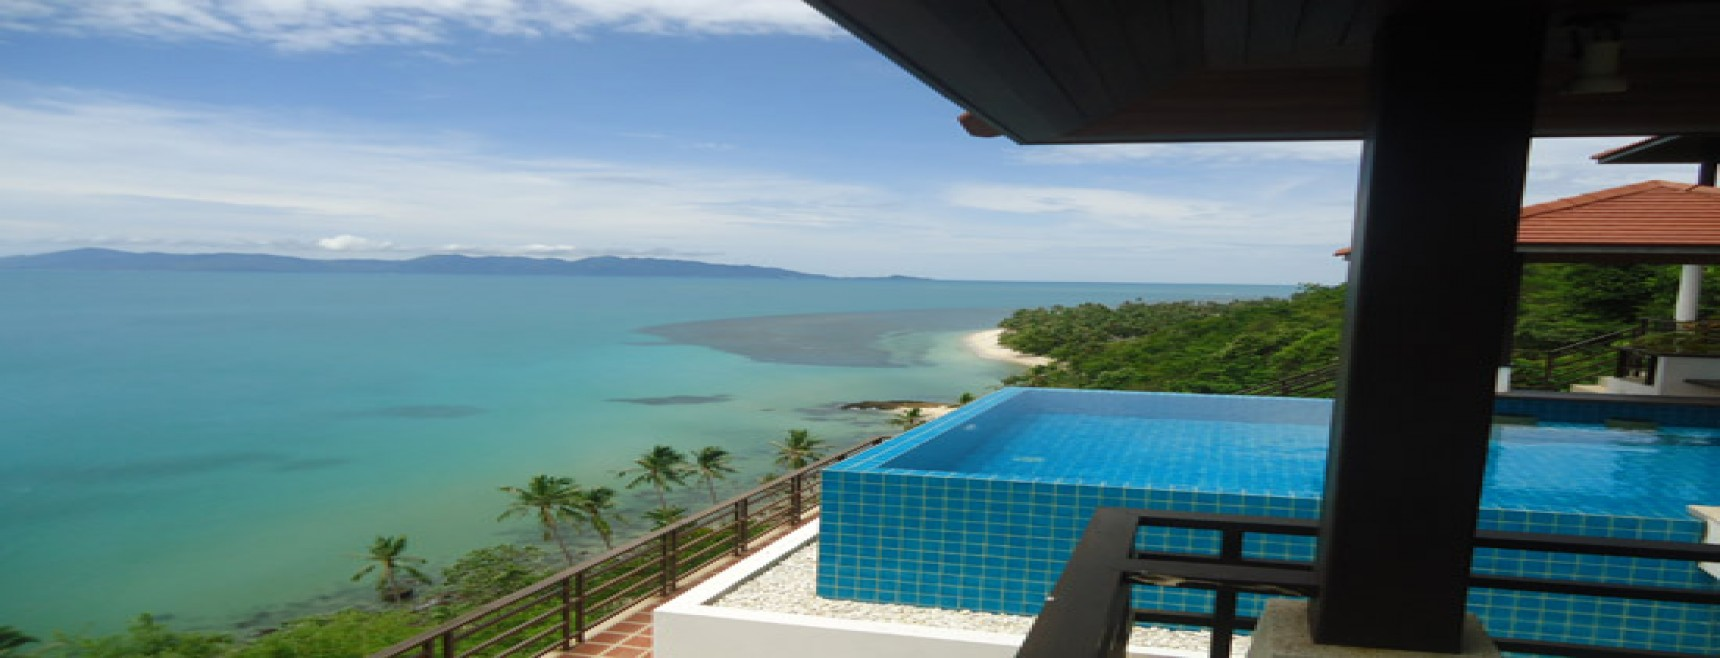 4 Bedrooms, Villa, Residential Sales, 4 Bathrooms, Listing ID 1385, Ban Tai, North West, Koh Samui,